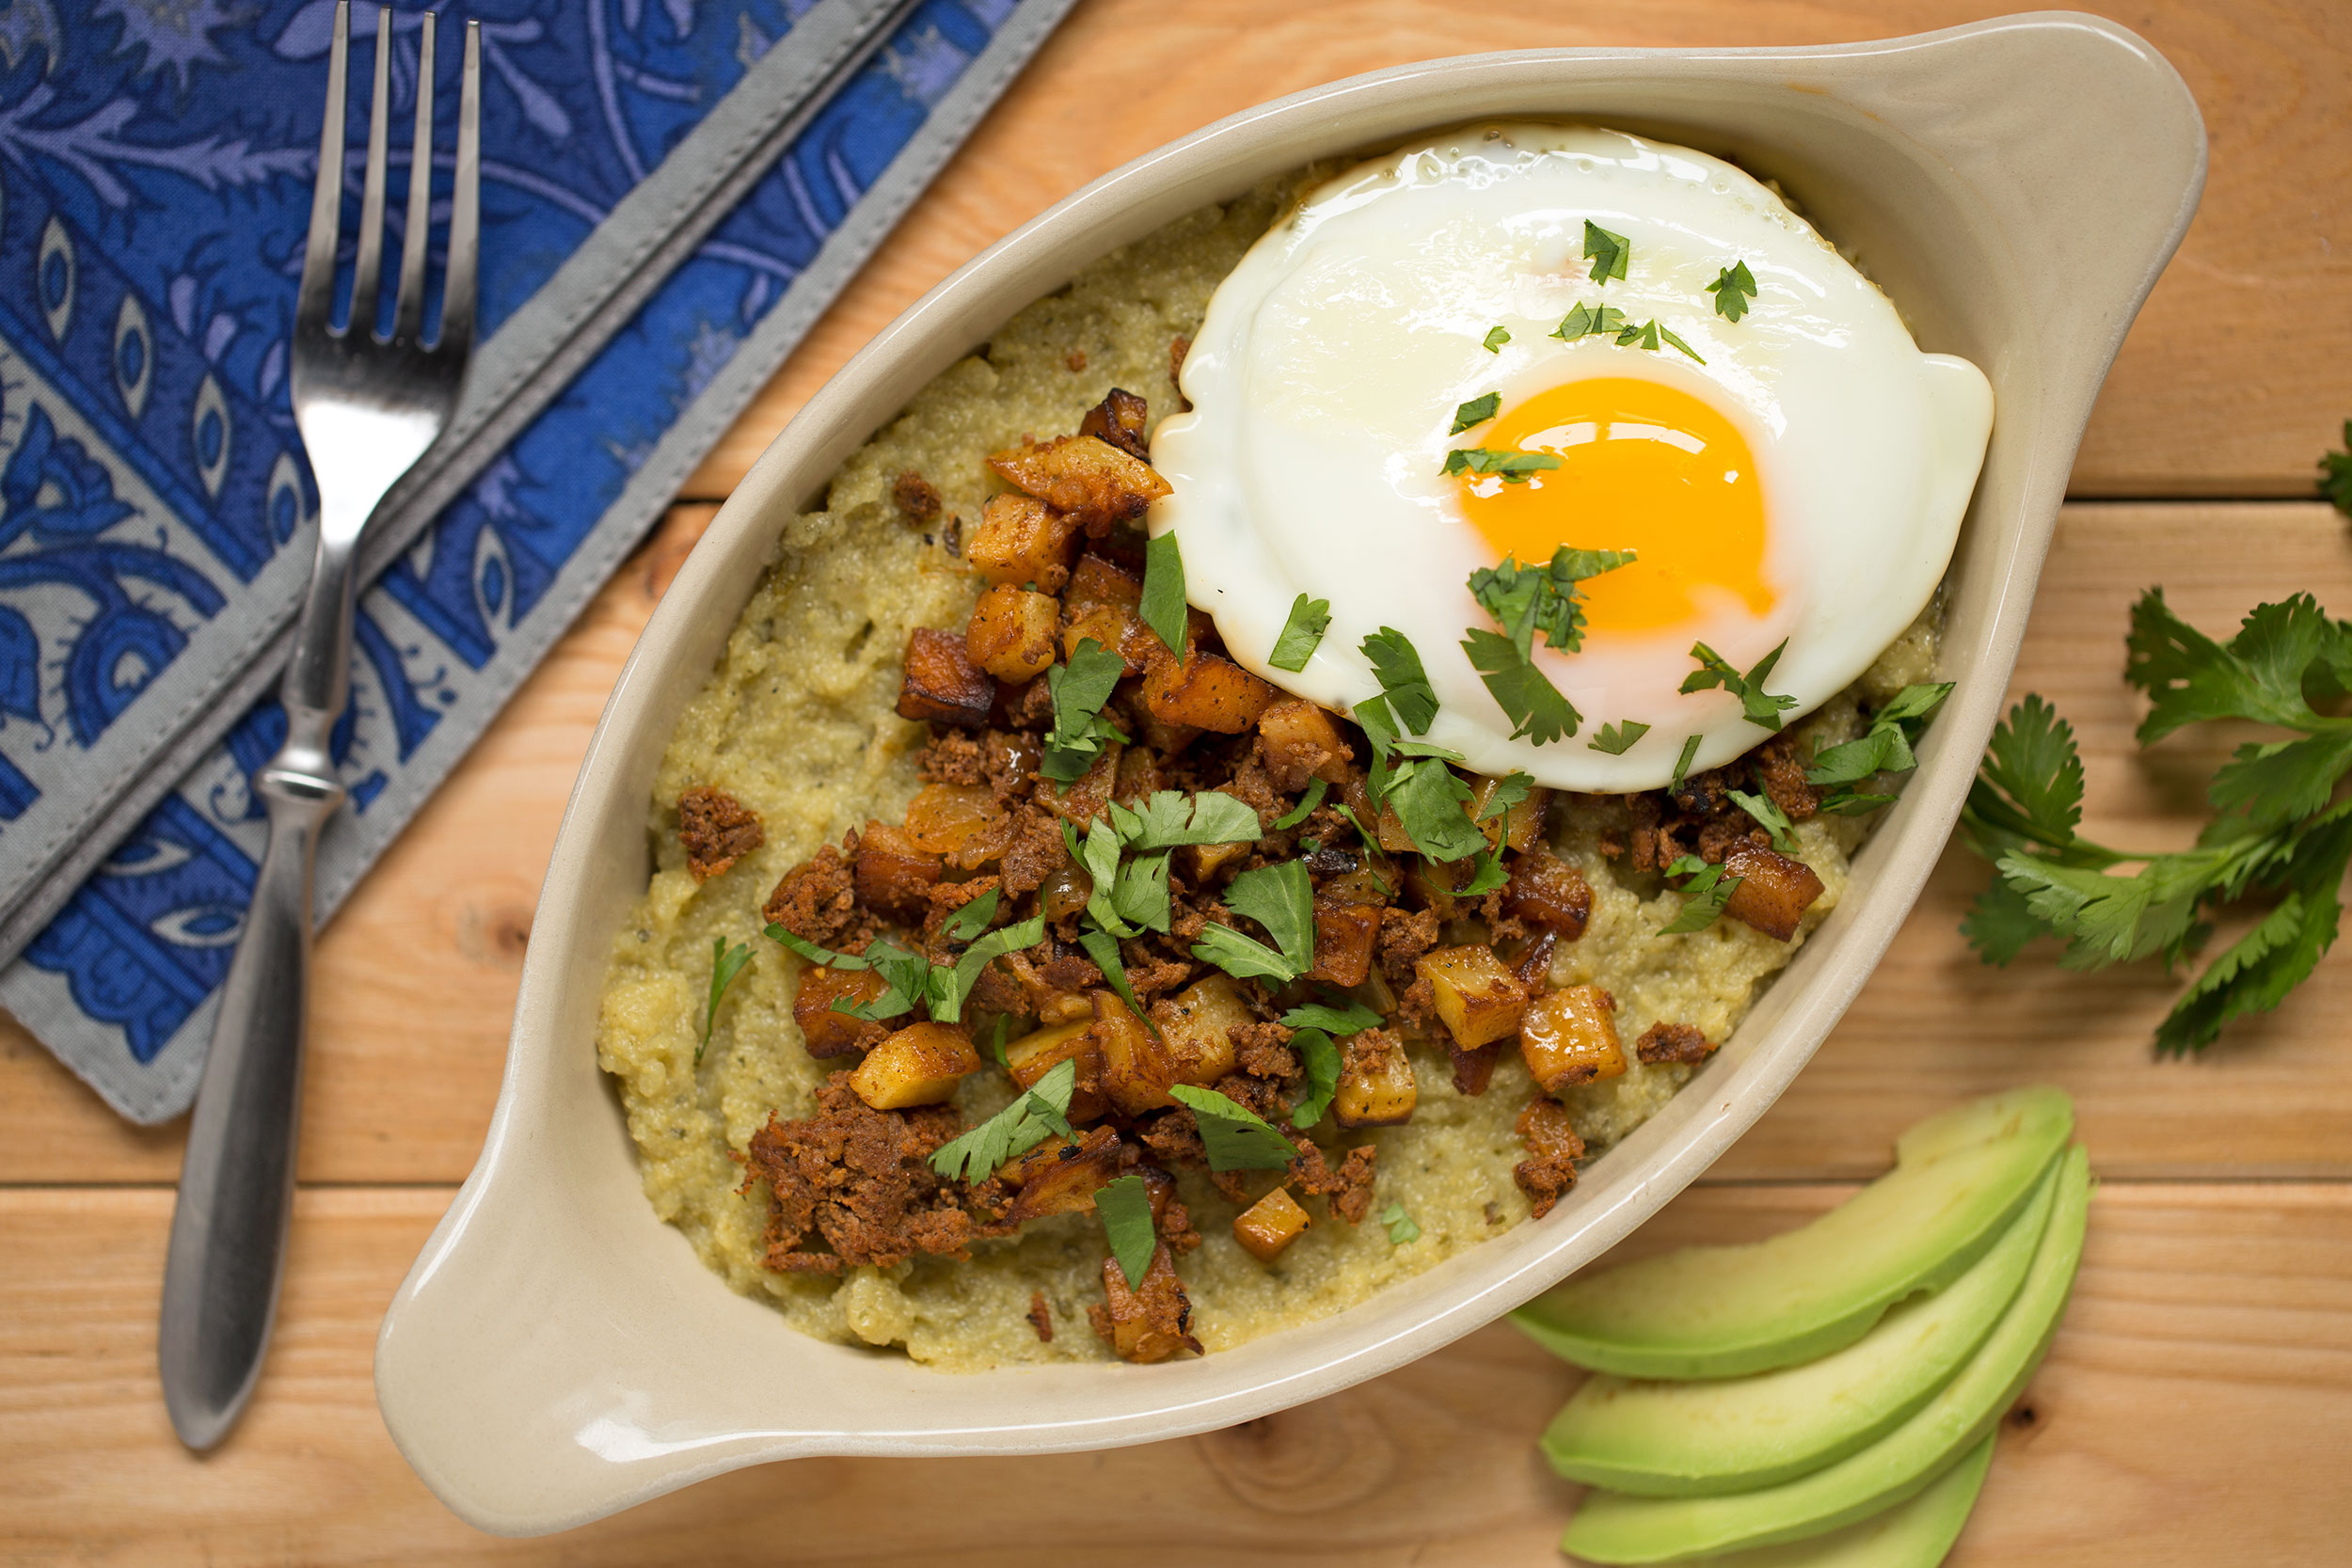 Southwestern Green Chile Polenta Breakfast Bake